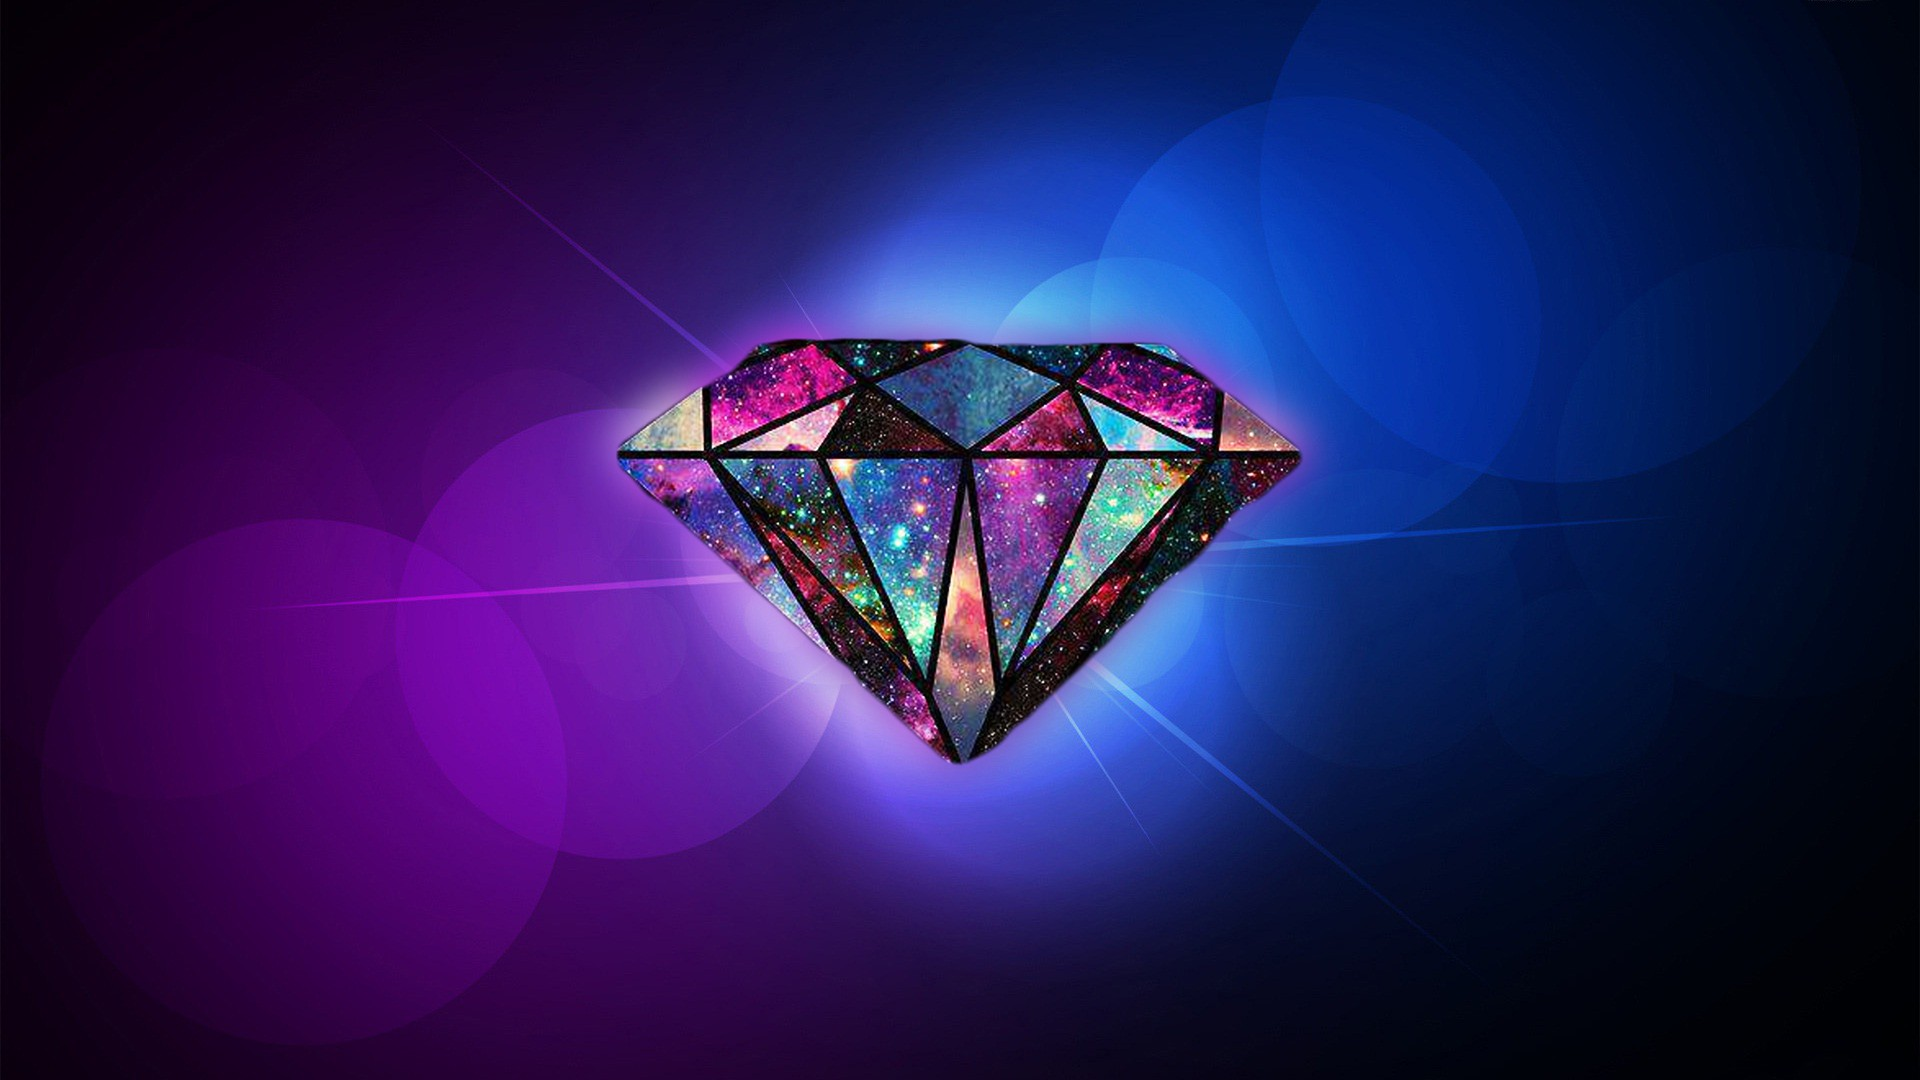 Free Download 3d Desktop Wallpapers Backgrounds Diamond Hq Wallpaper 29111 Baltana